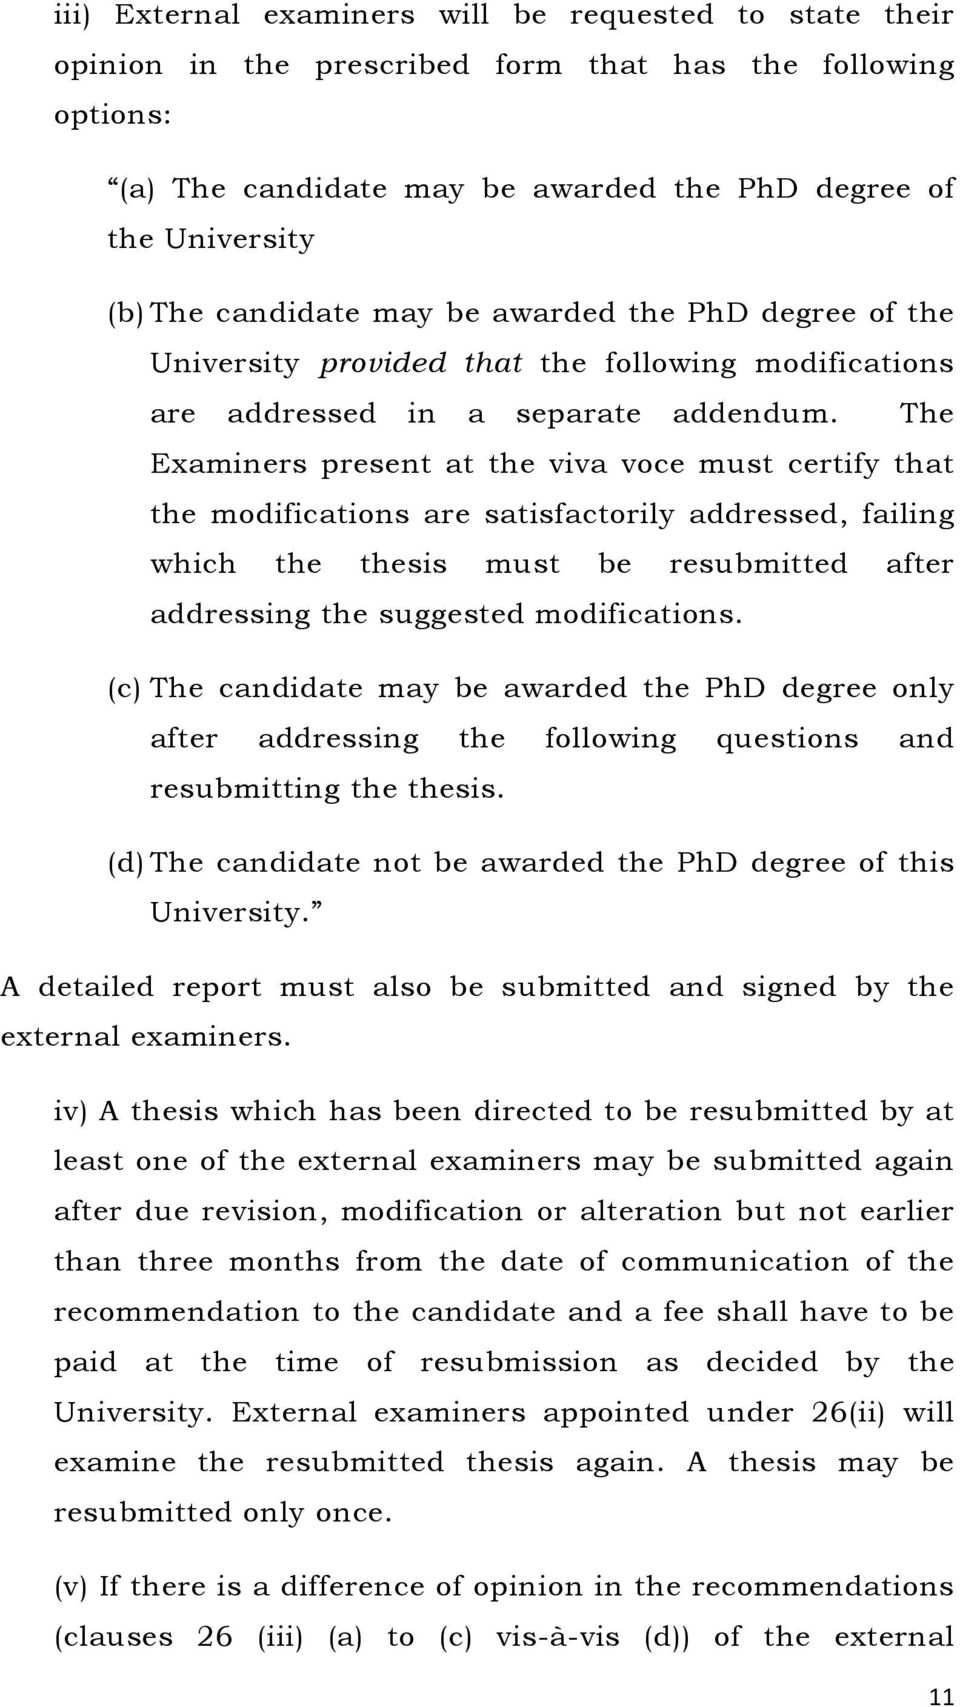 The Examiners present at the viva voce must certify that the modifications are satisfactorily addressed, failing which the thesis must be resubmitted after addressing the suggested modifications.